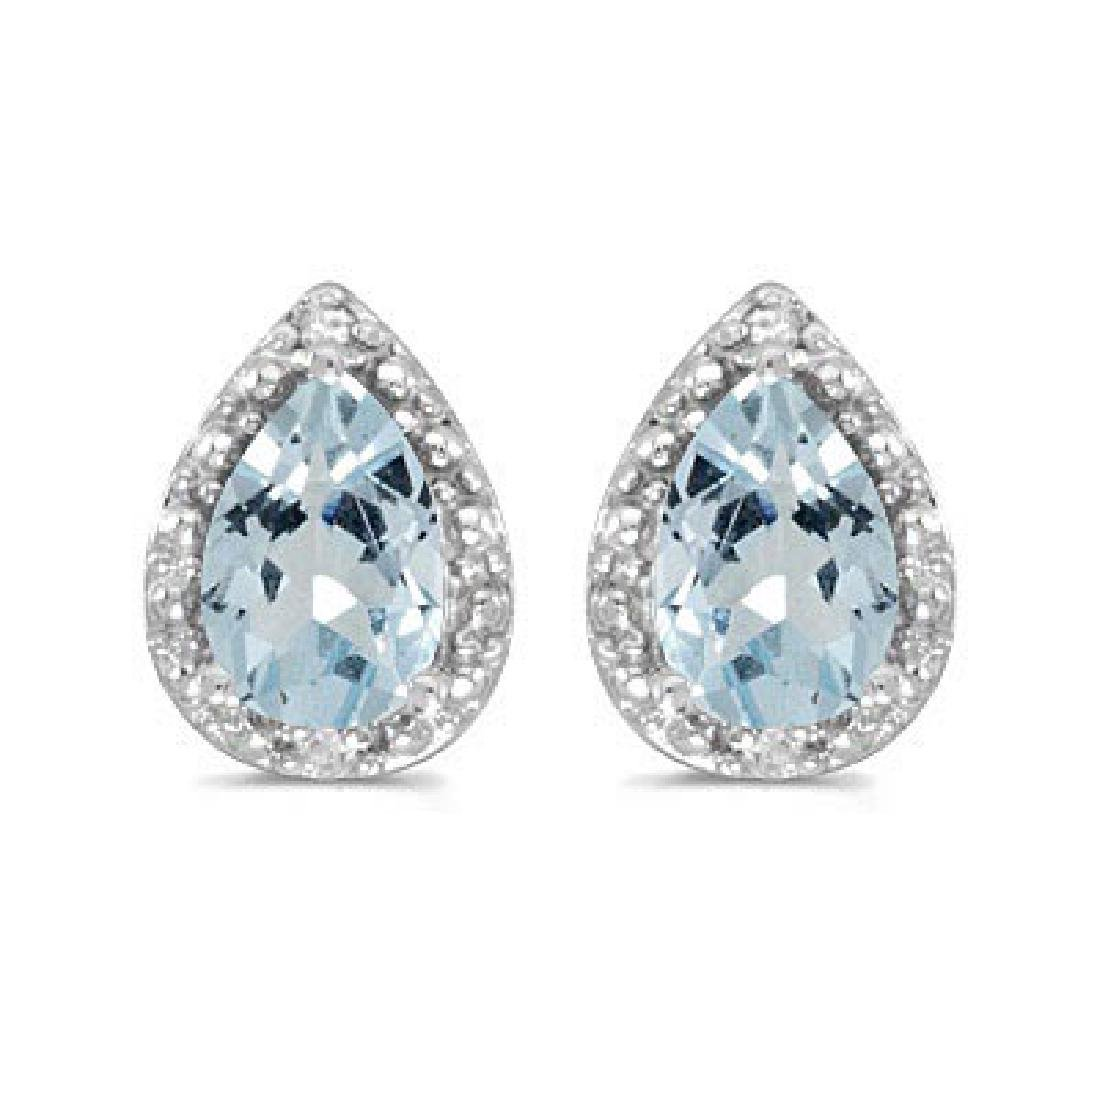 Pear Aquamarine and Diamond Stud Earrings 14k White Gol